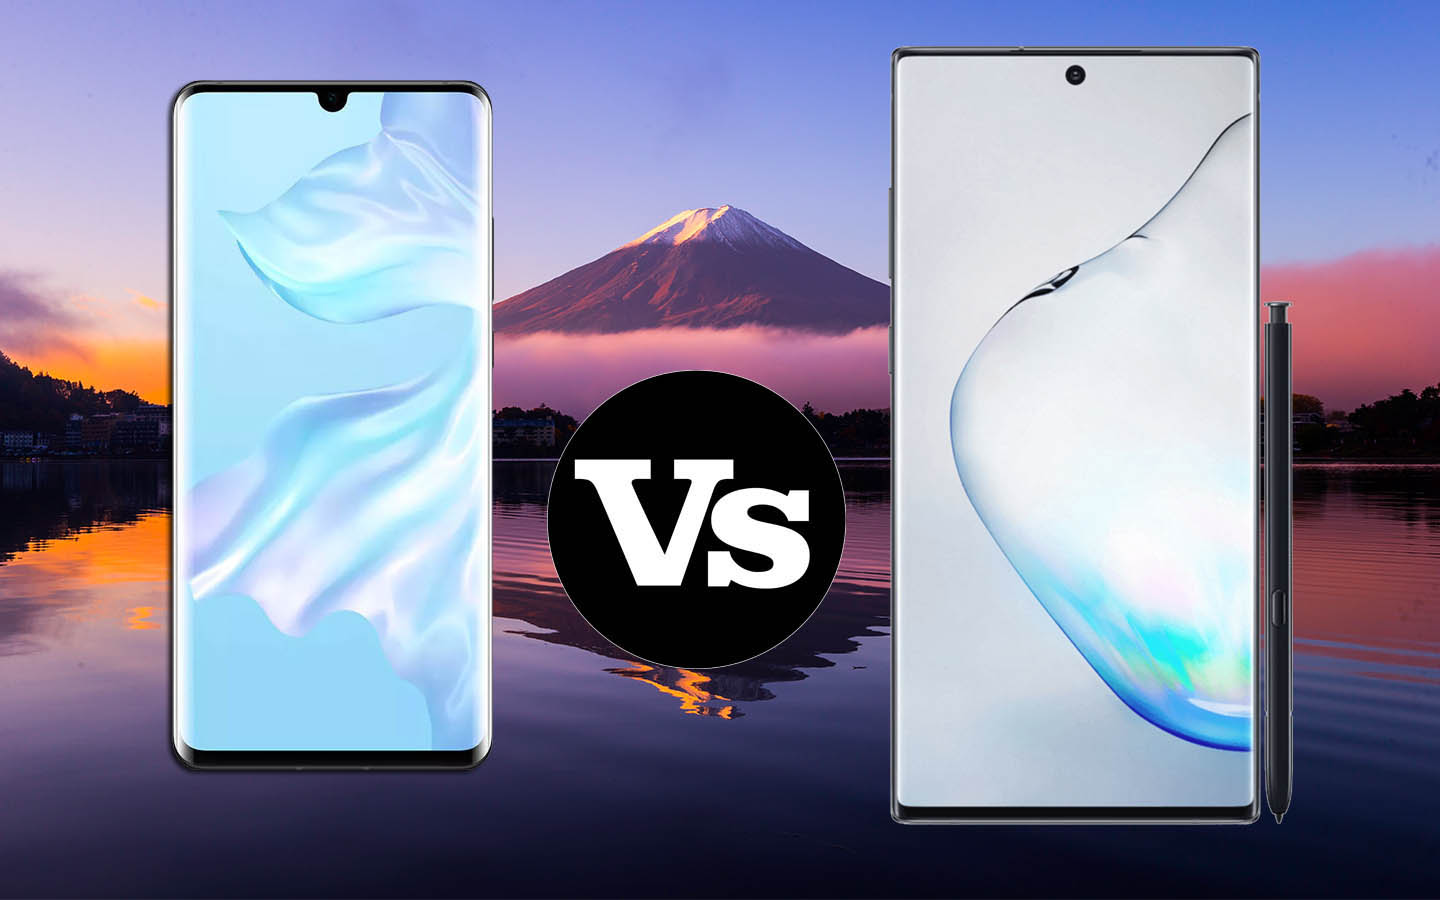 Huawei-P30-Pro-vs-Samsung-Note-10-Plus